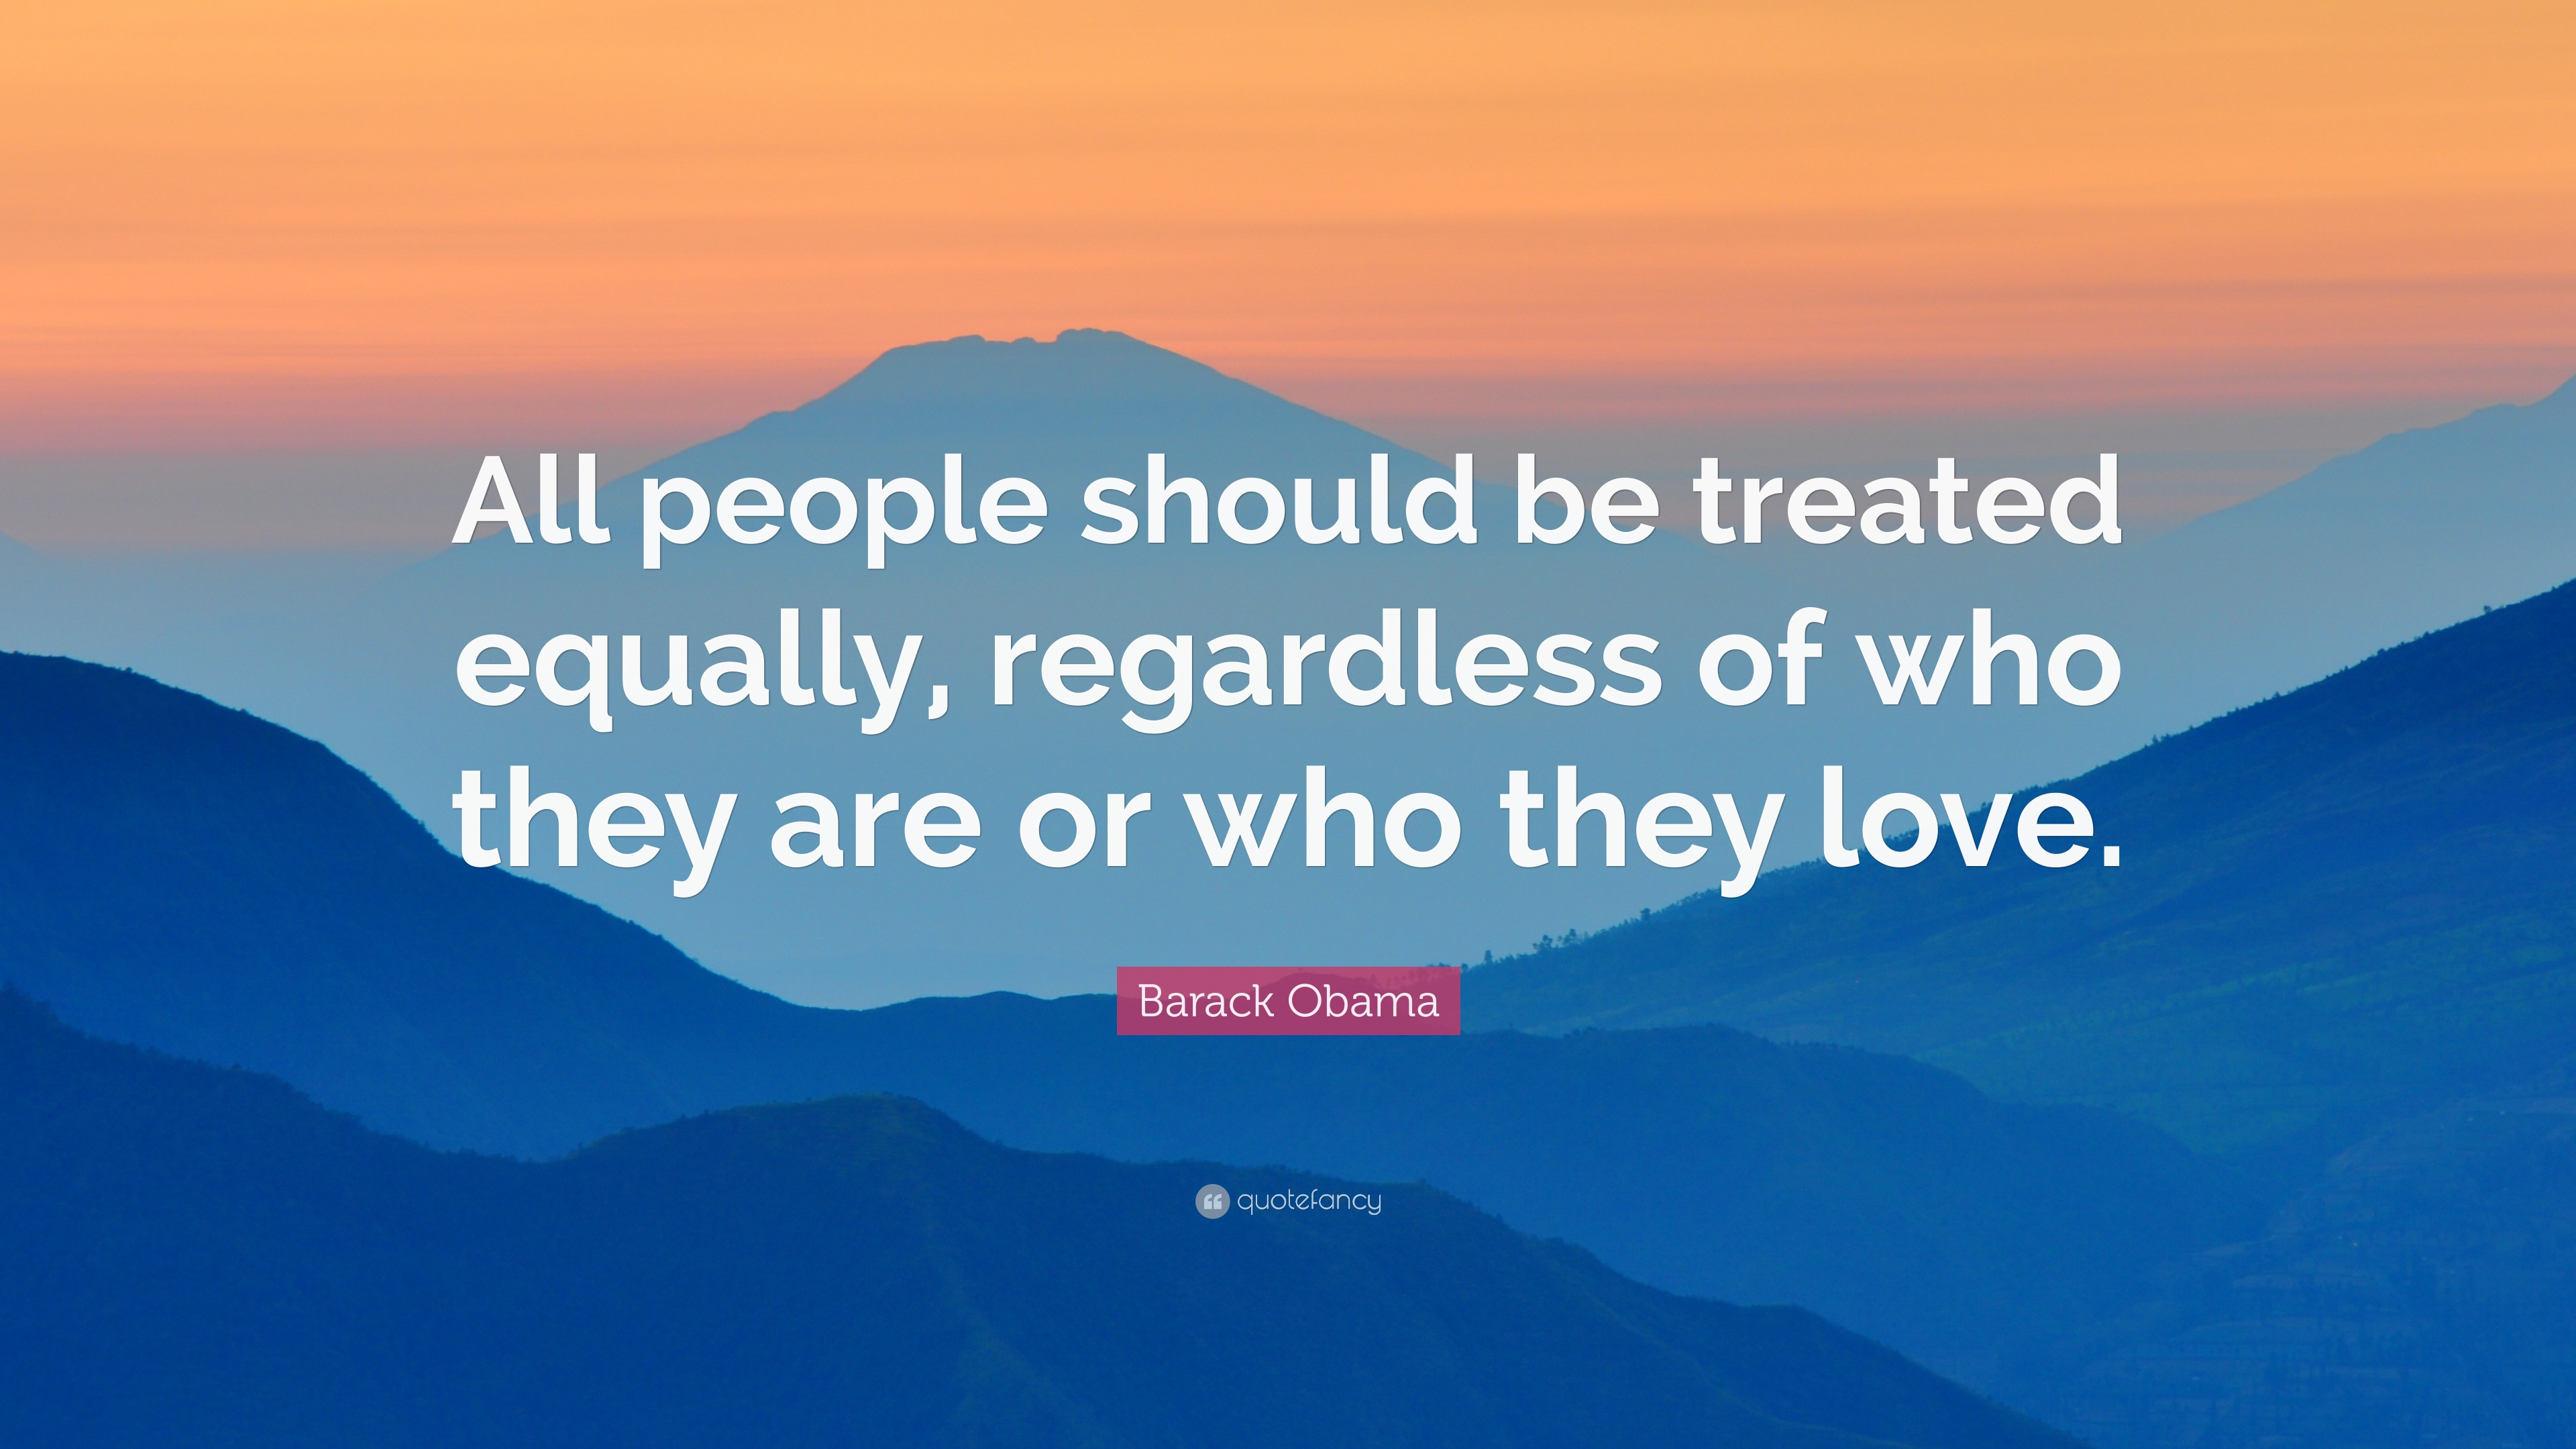 Kennedy Quote Wallpaper Barack Obama Quote All People Should Be Treated Equally